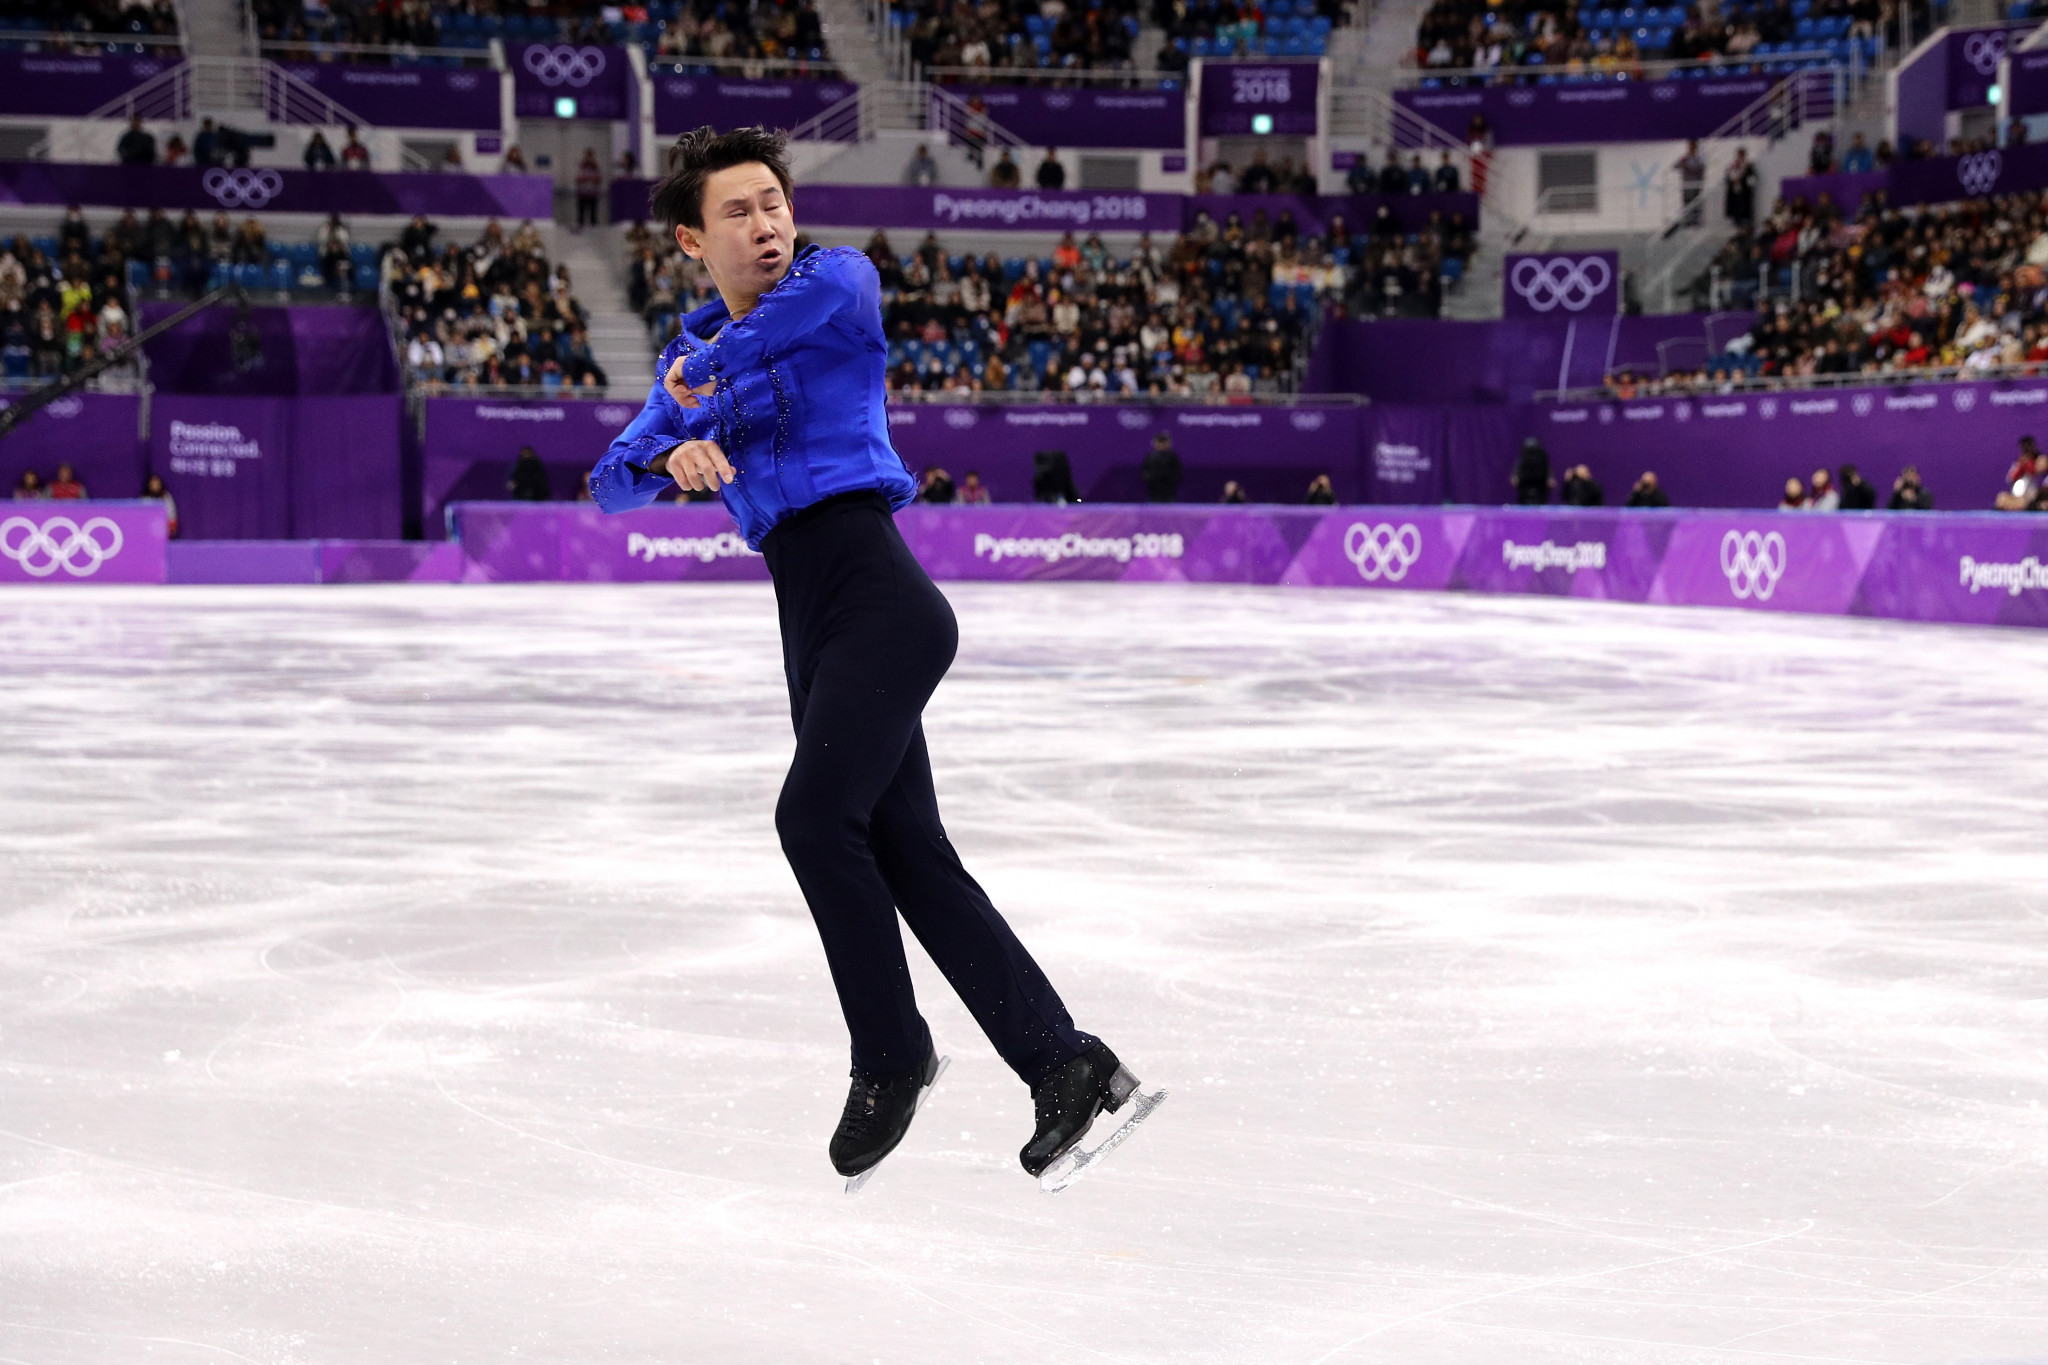 The Kazakh athlete competed at the 2018 Winter Olympic Games in Pyeongchang ©Getty Images